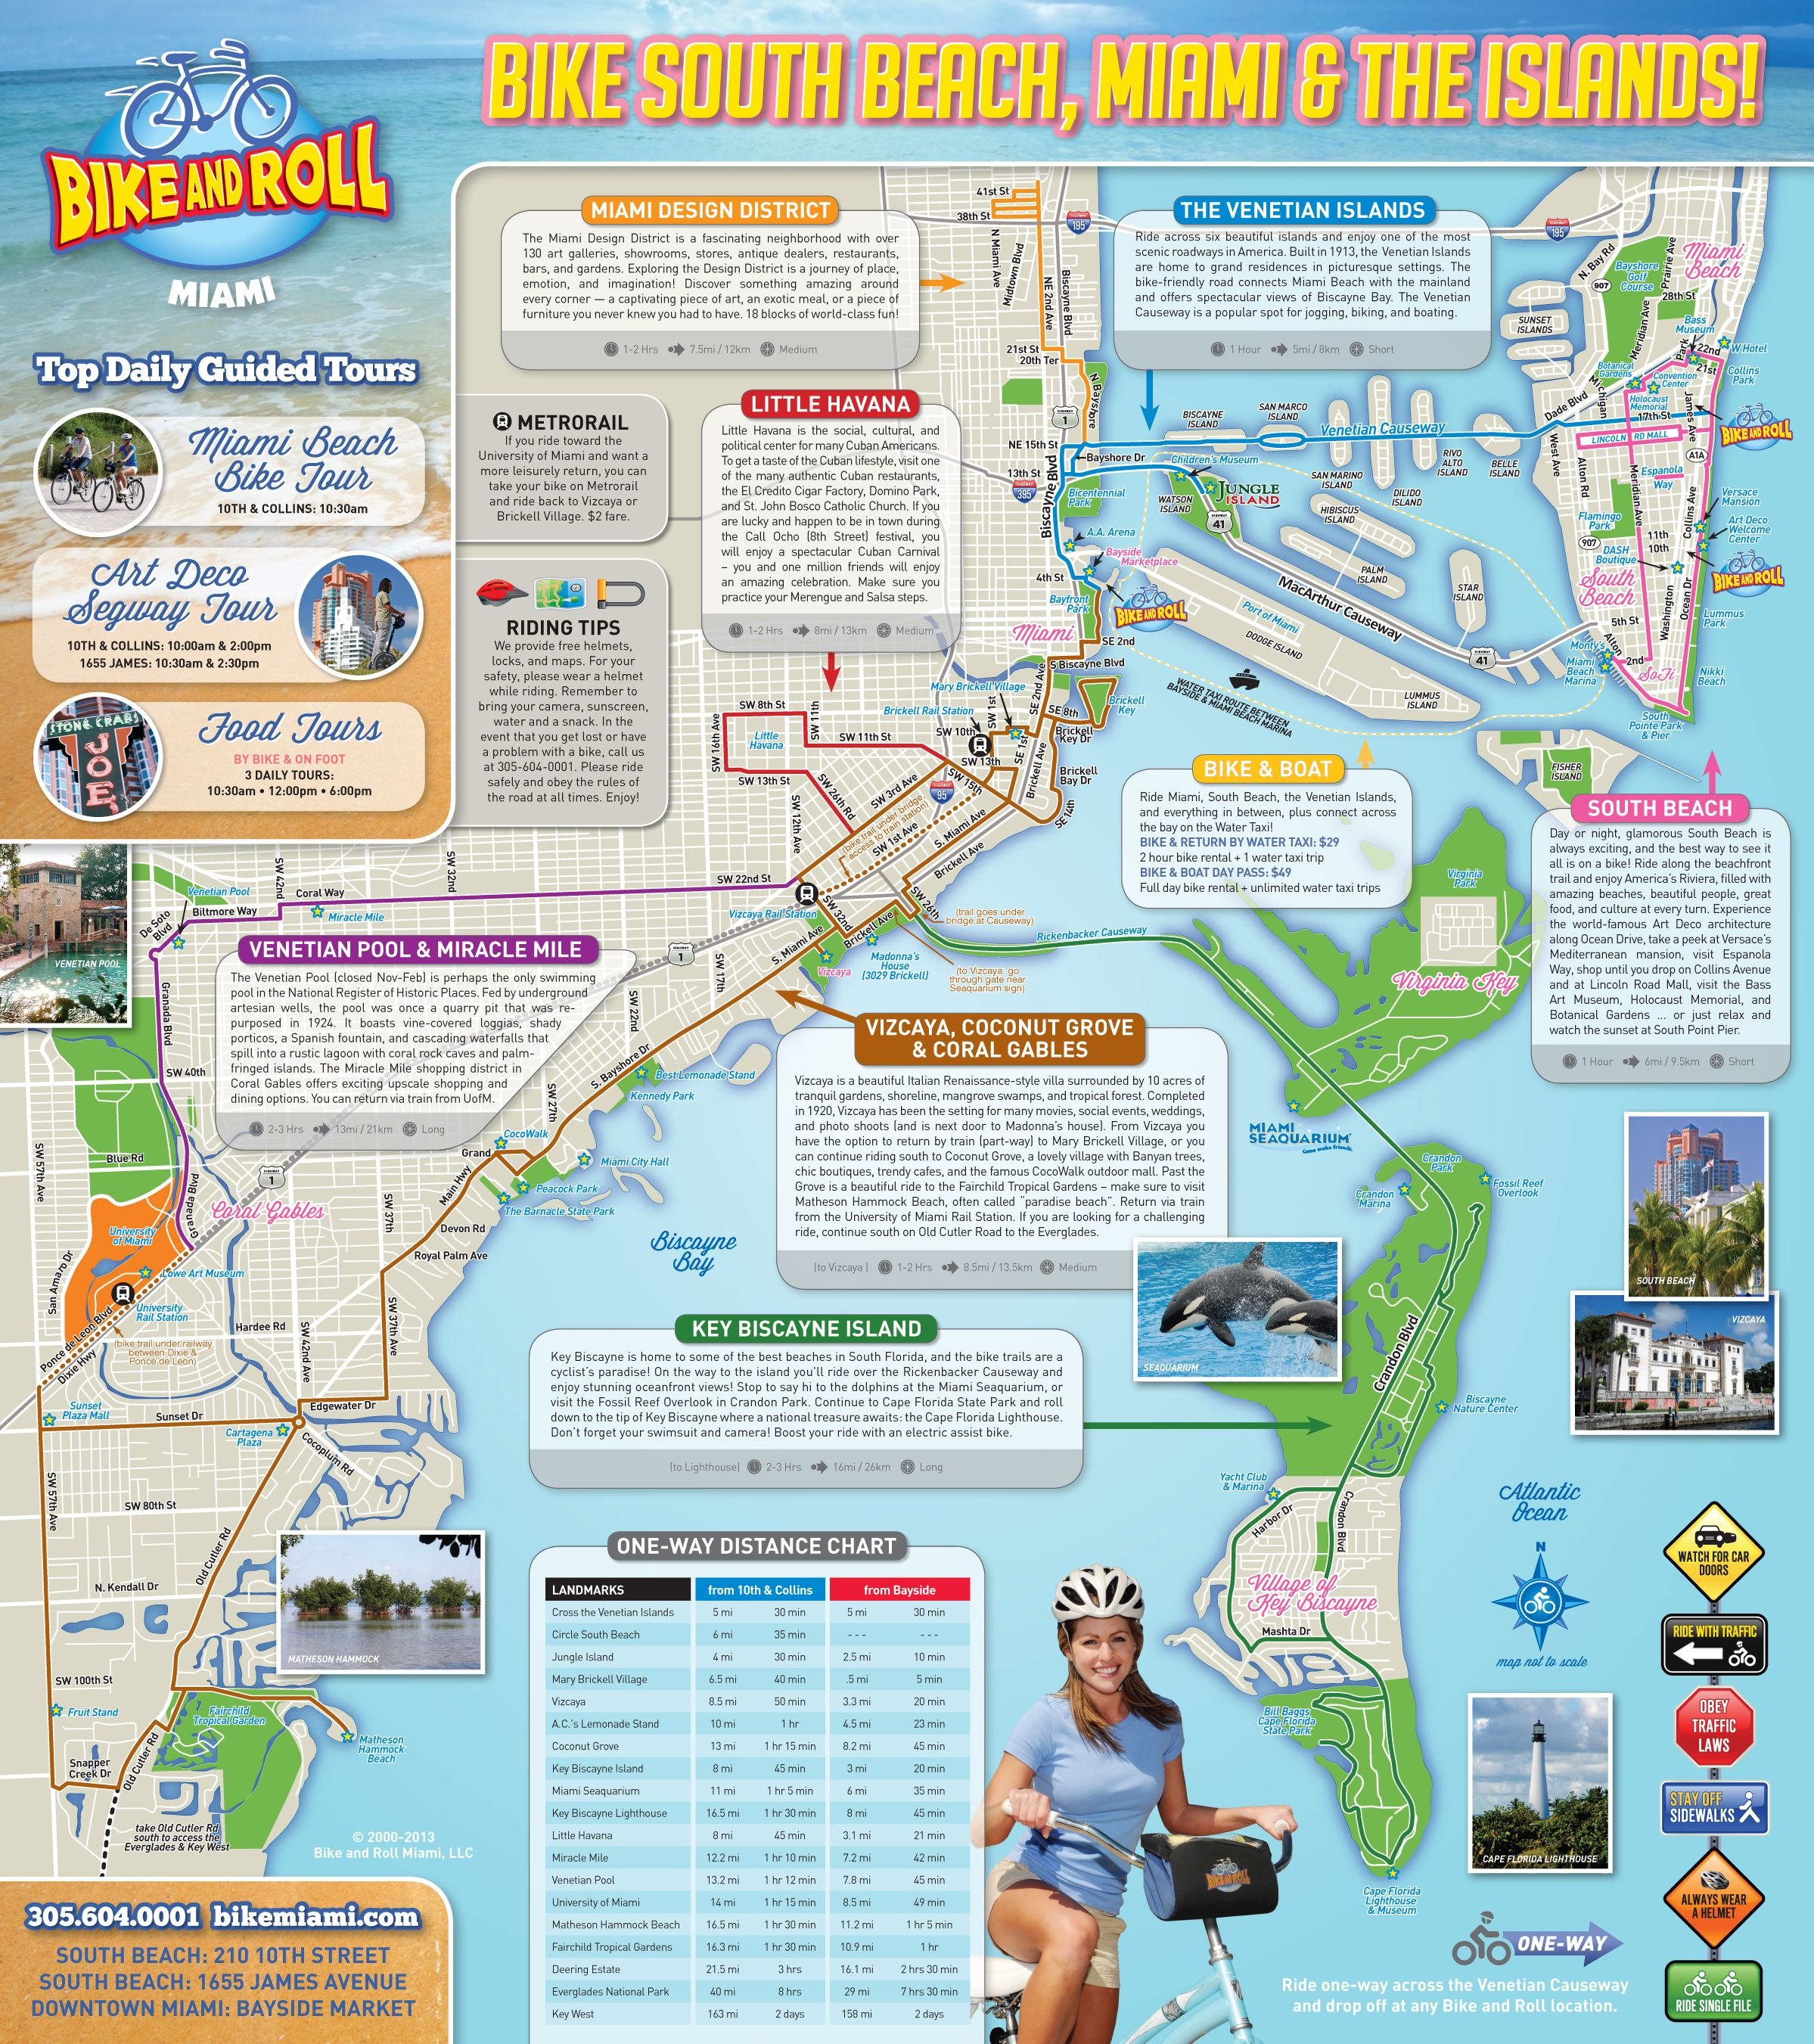 self guided bike tour map of miami beach - google search